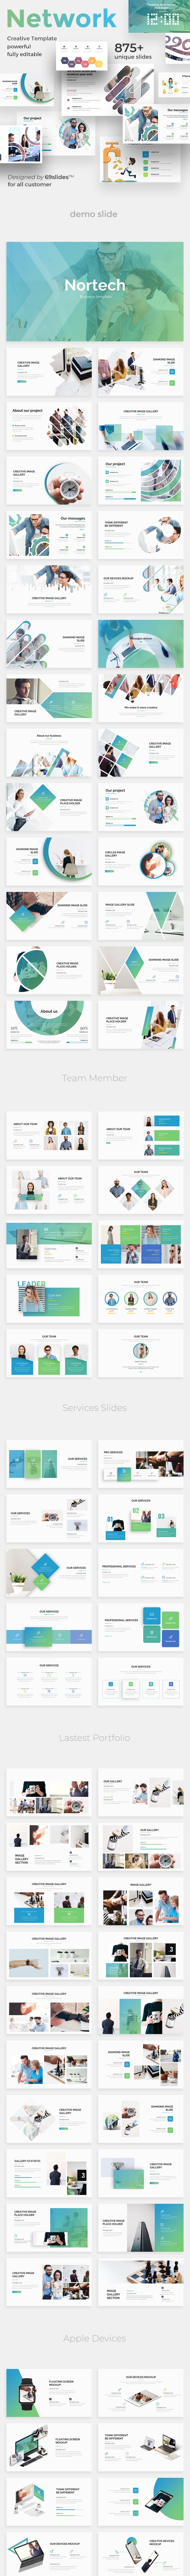 3 in 1 Social Network Pitch Deck Bundle Google Slide Template - Google Slides Presentation Templates